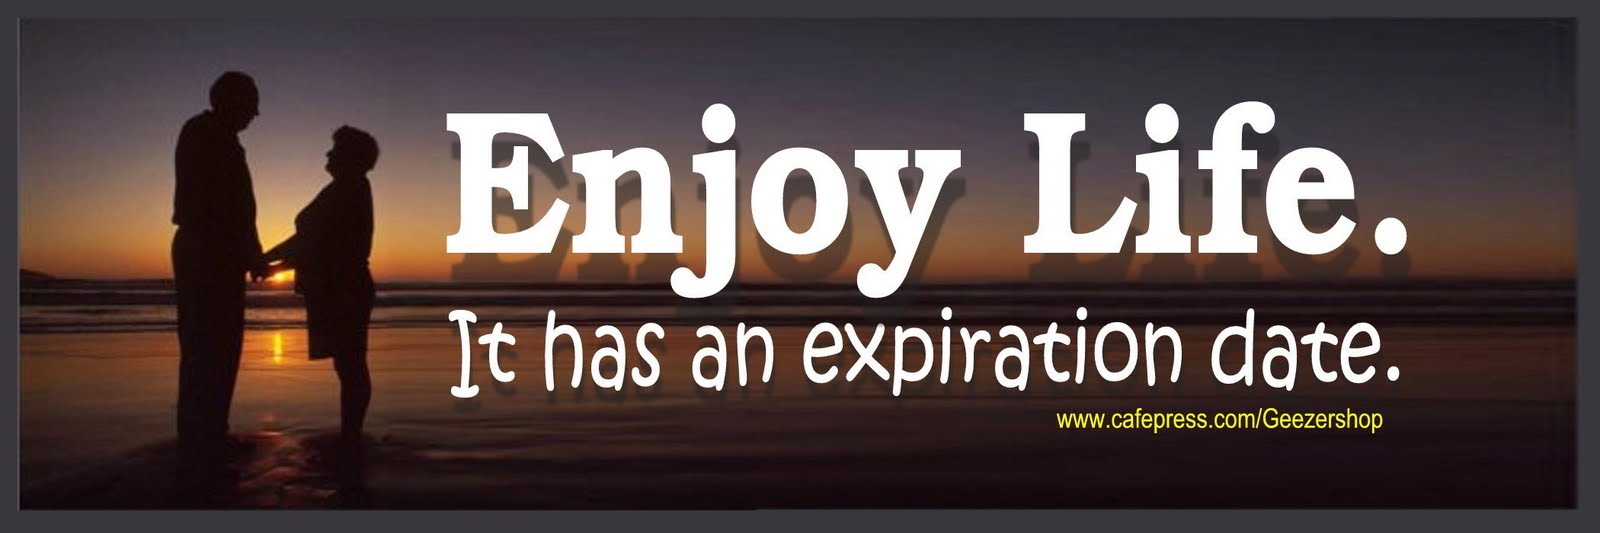 Enjoy life. It has an expiration date 2